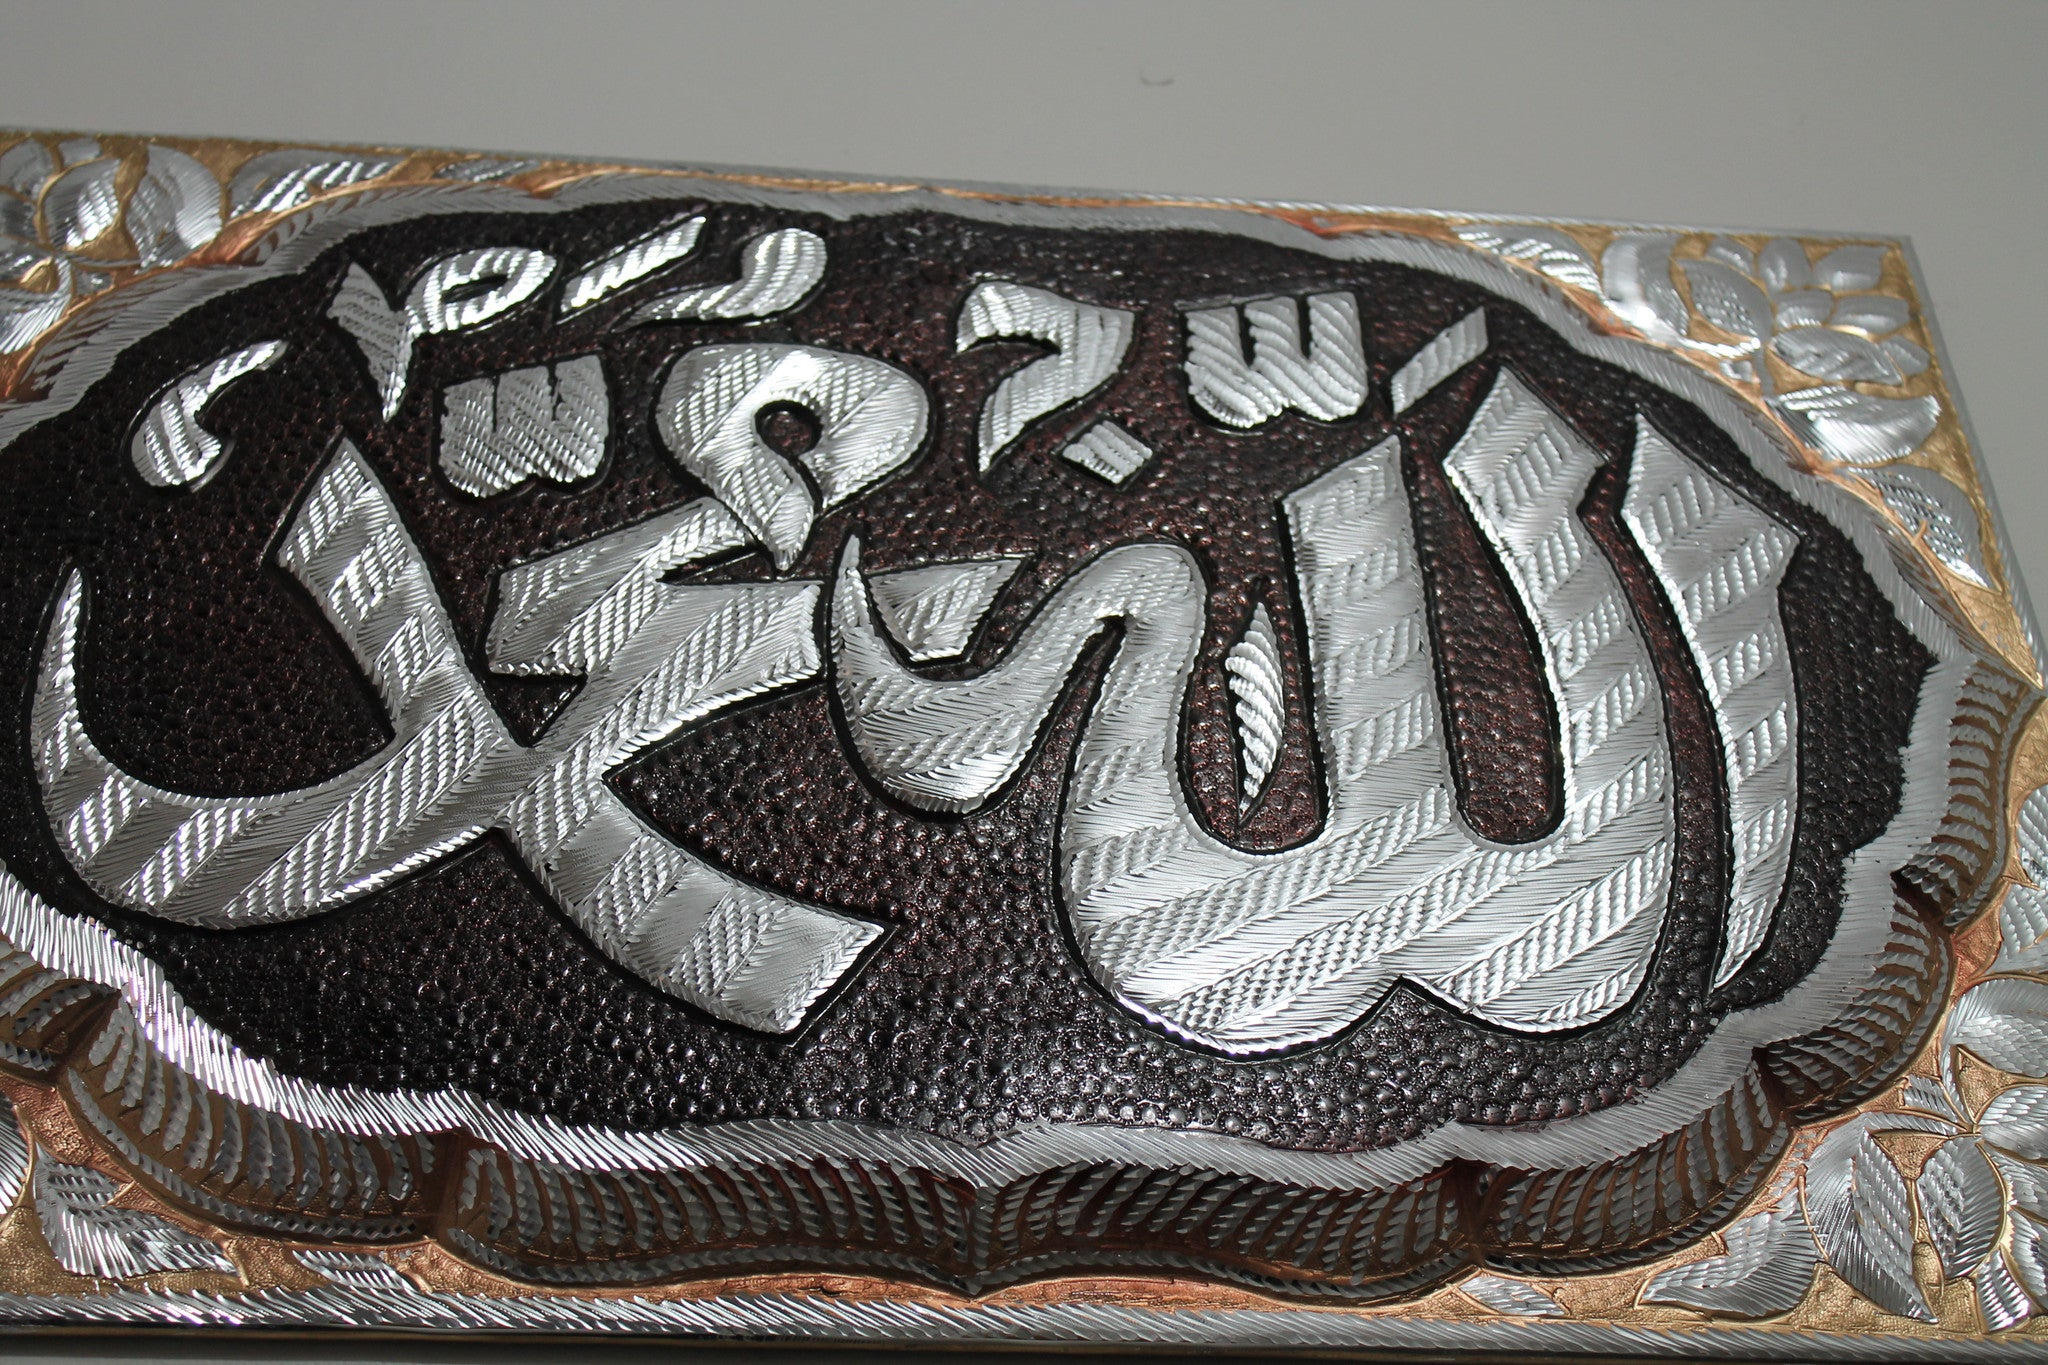 ... Islamic Wall Art on Metal Hand crafted Allah (S.W.T) and Muhammad (S.A.W) & Islamic Art on Metal Hand crafted Allah (S.W.T) and Muhammad (S.A.W ...